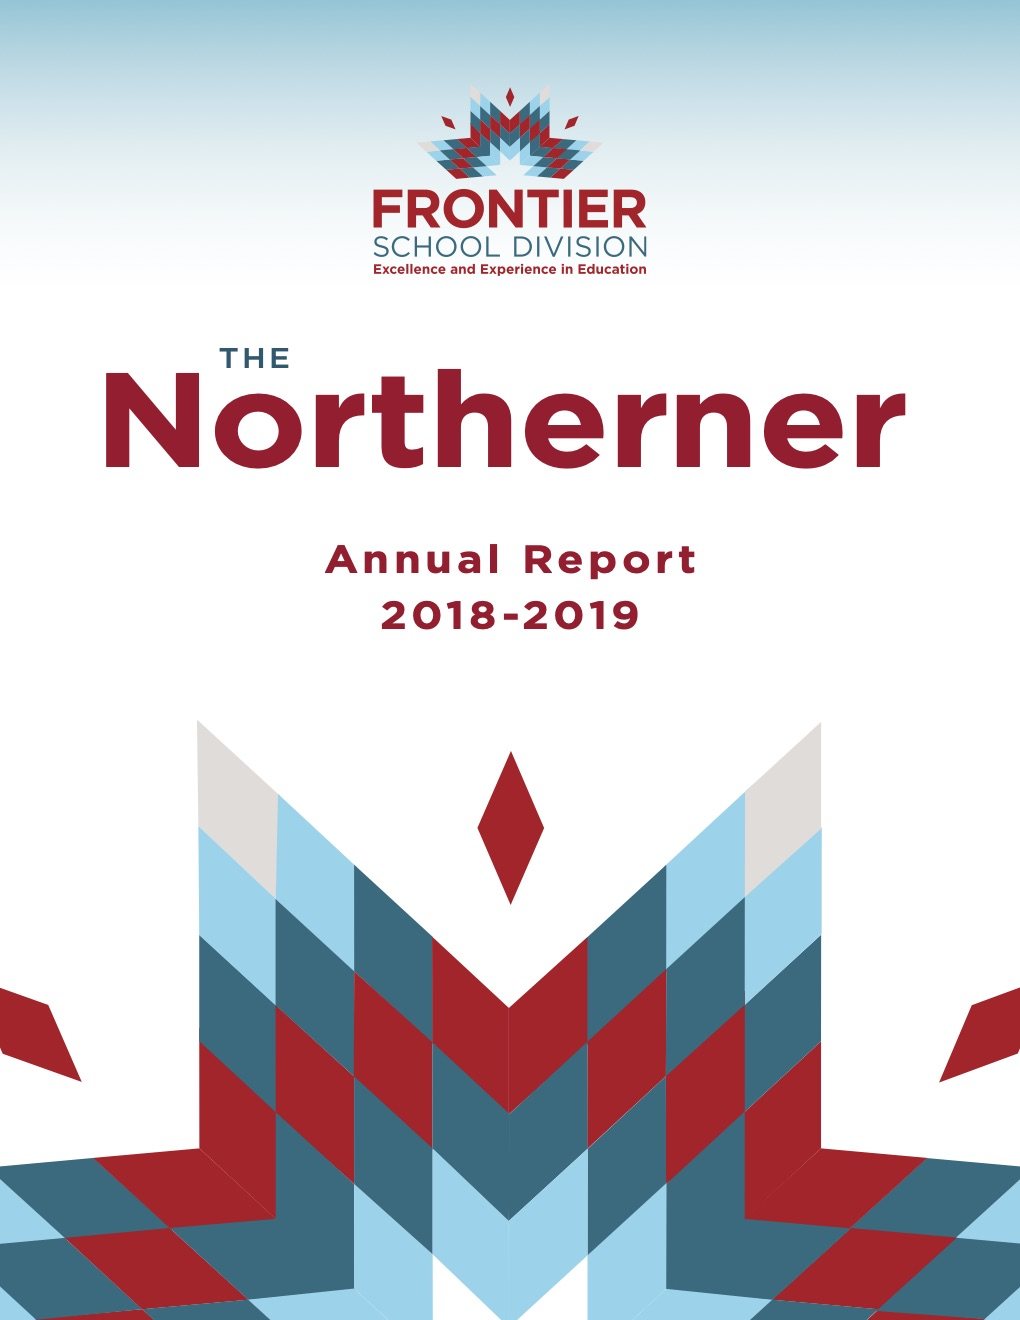 Read the 2018-19 Northerner Annual Report